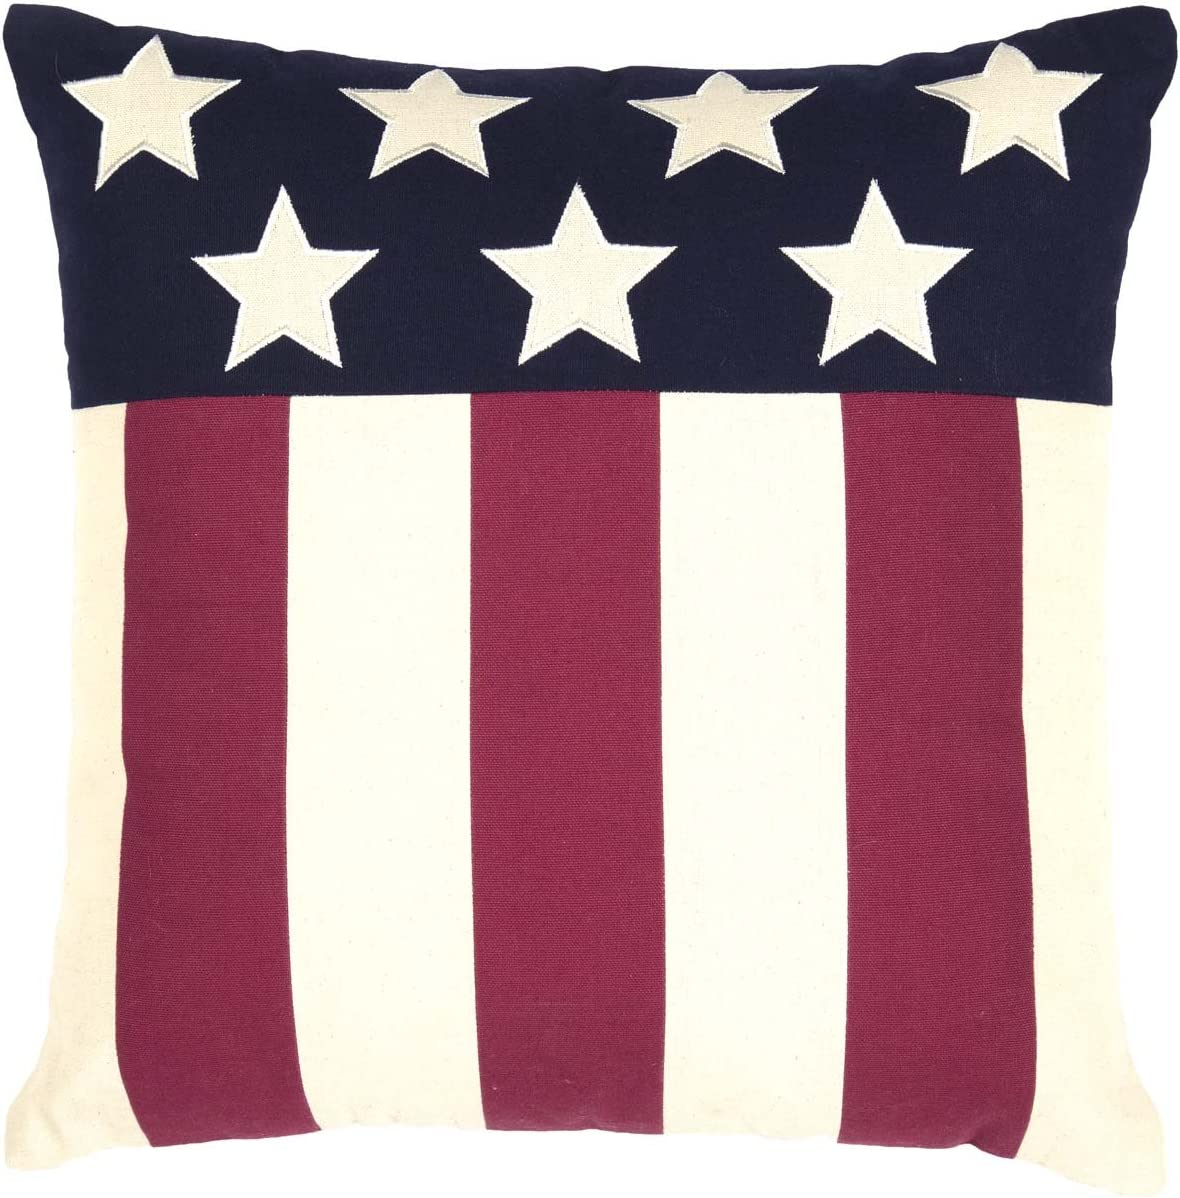 VHC Brands Seasonal Americana Pillows Throws – Modern American Flag Red 18 x 18 Pillow